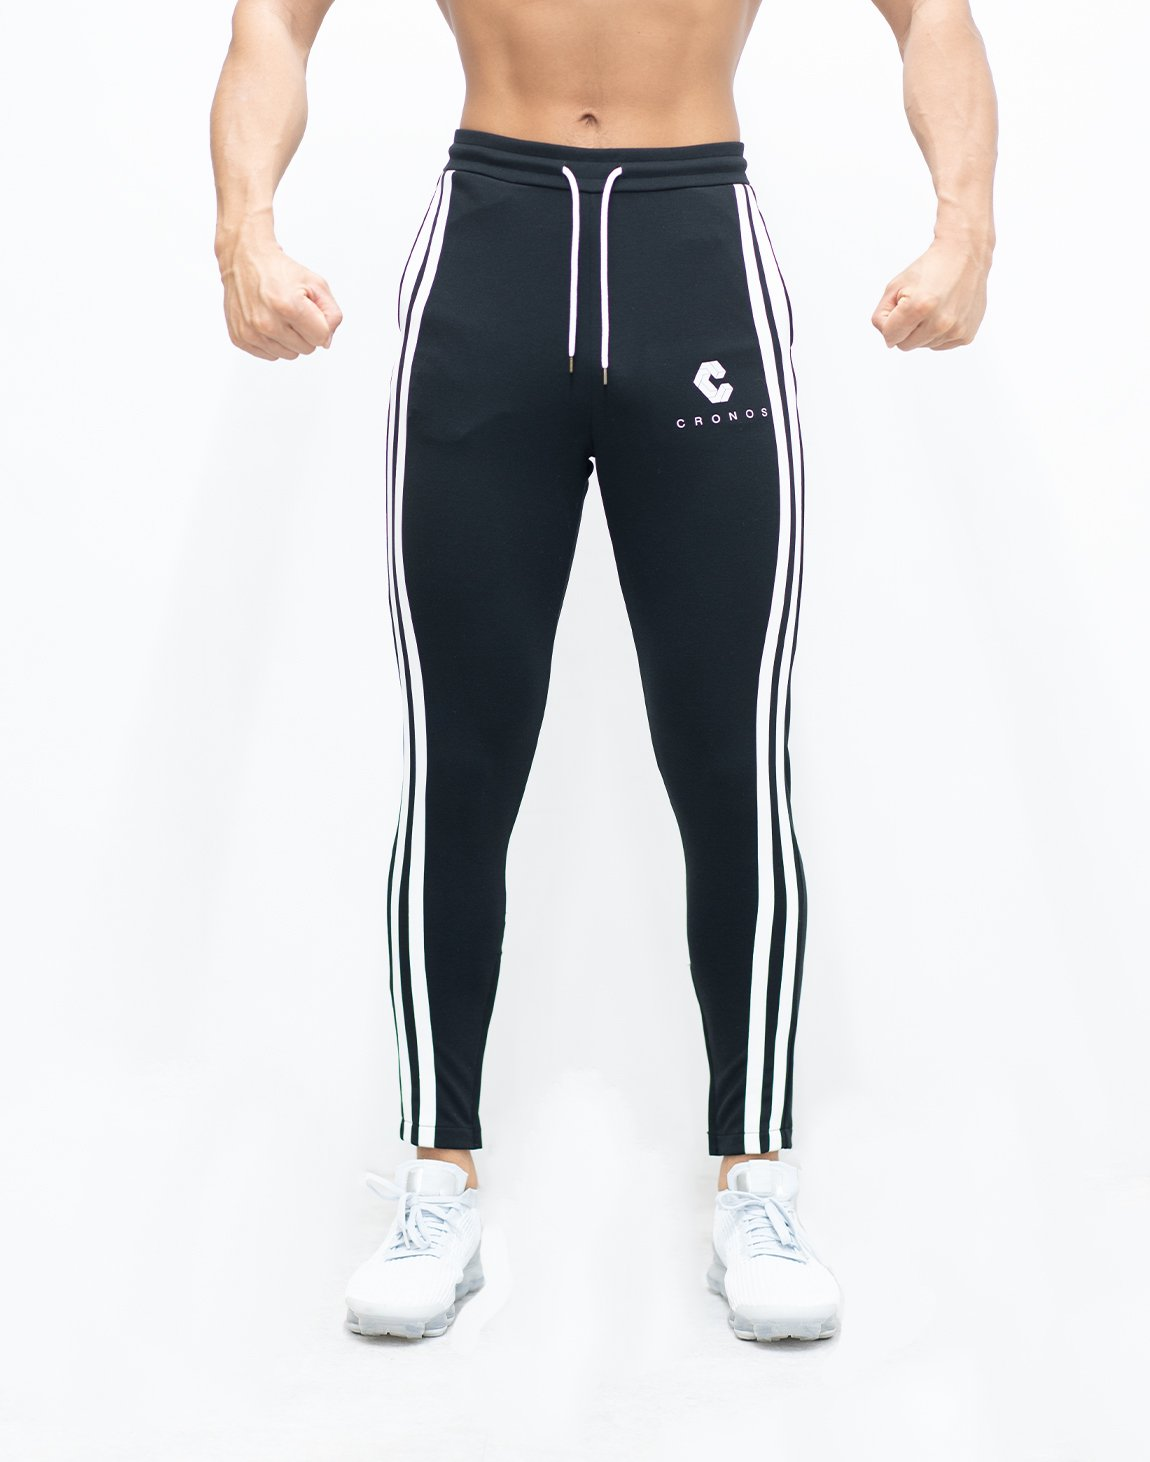 <img class='new_mark_img1' src='https://img.shop-pro.jp/img/new/icons1.gif' style='border:none;display:inline;margin:0px;padding:0px;width:auto;' />CRNS TWO LINE CALF LOGO PANTS 【BLACK】